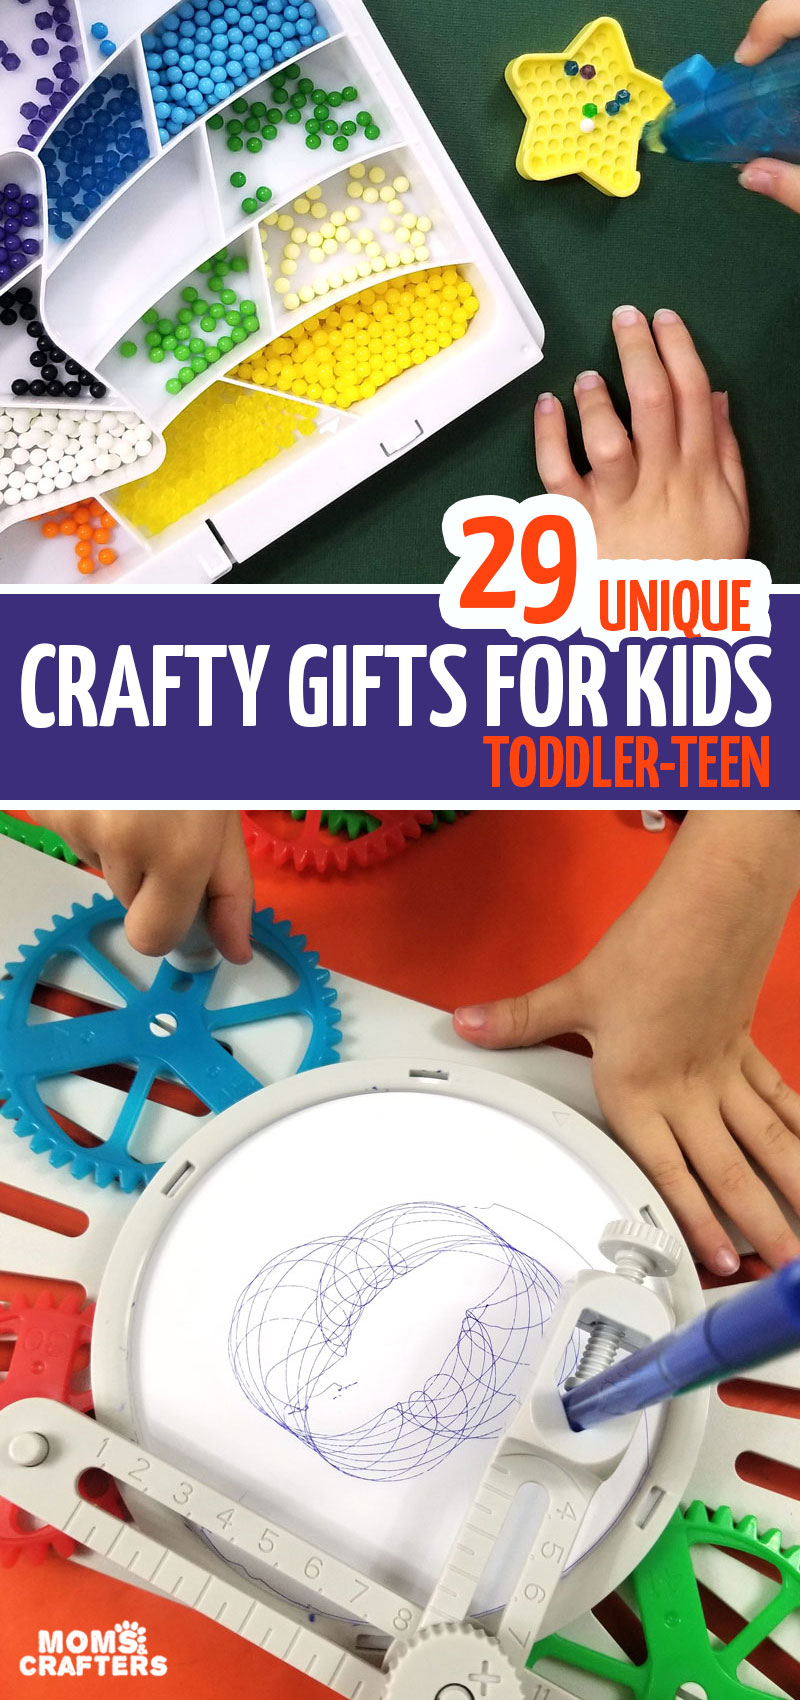 Click for an epic list of the best gifts for creative kids - including toddlers through teens!